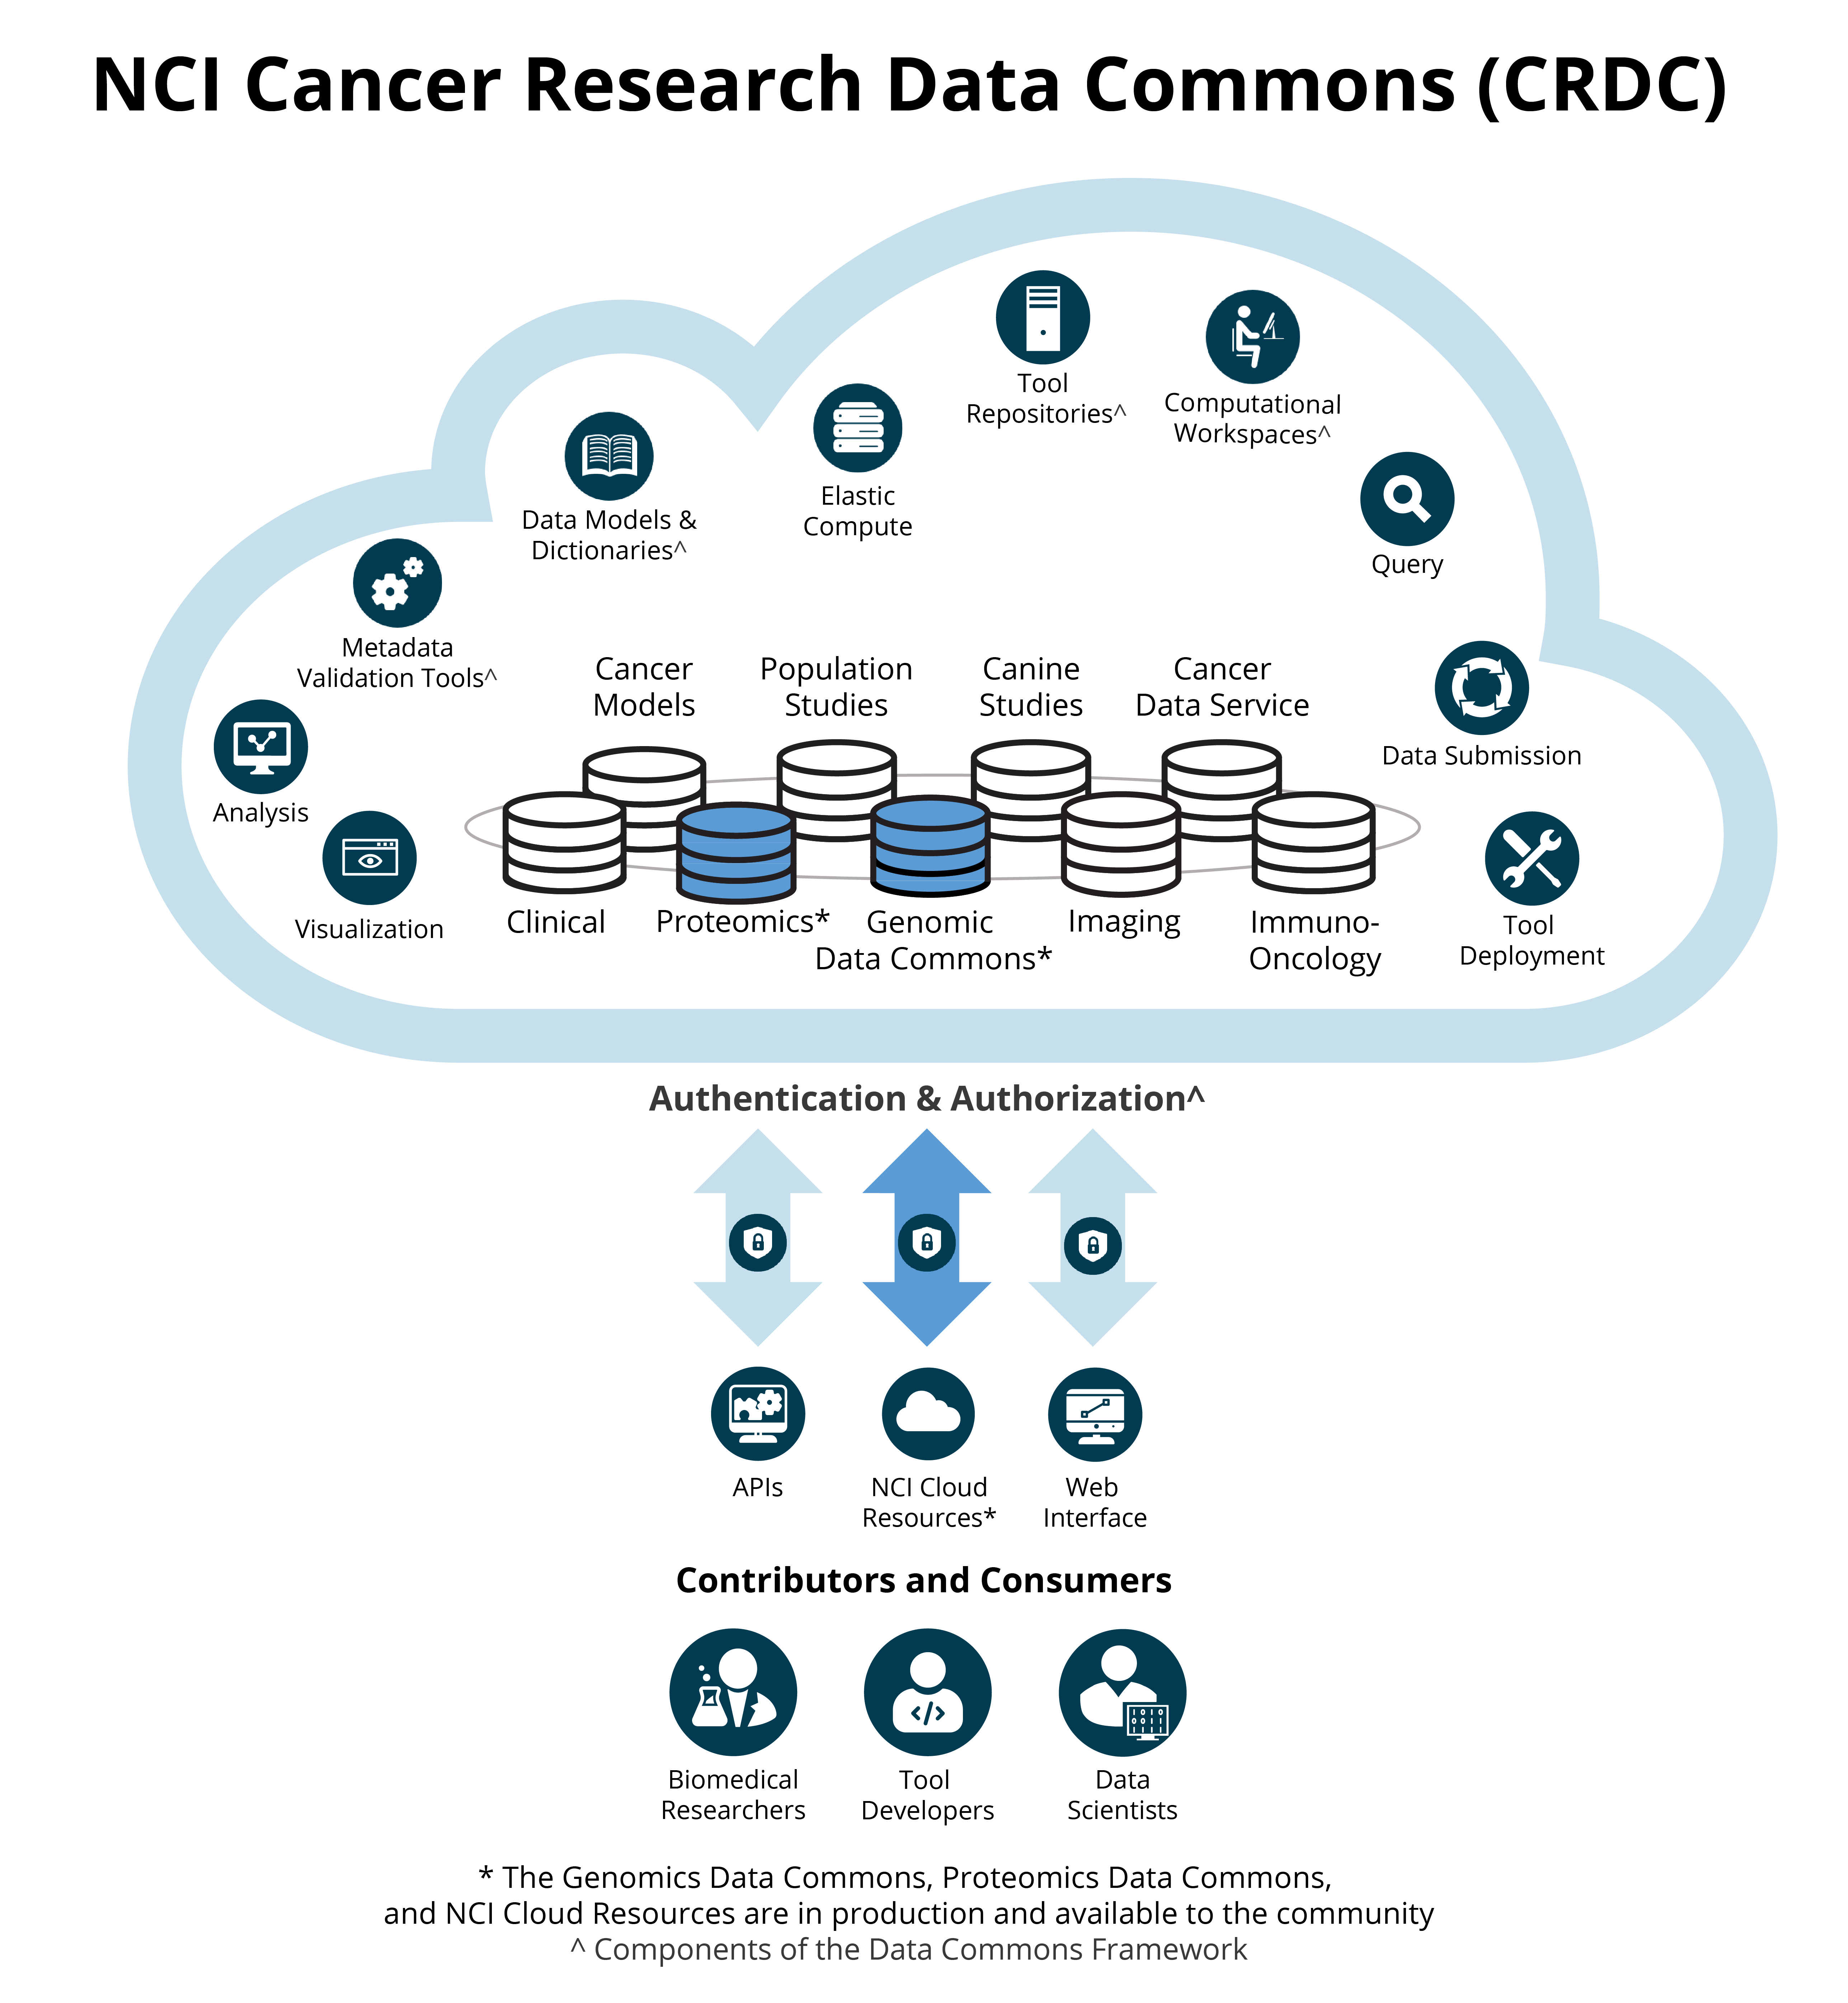 The NCI Cancer Research Data Commons (CRDC) provides biomedical researchers, tool developers, and data scientists with access to data from NCI programs through the Genomic Data Commons, NCI Cloud Resources, and Proteomics Data Commons. The CRDC allows users to analyze, share, and store results, and is growing to include a wider range of data, including proteomics, imaging, and canine.